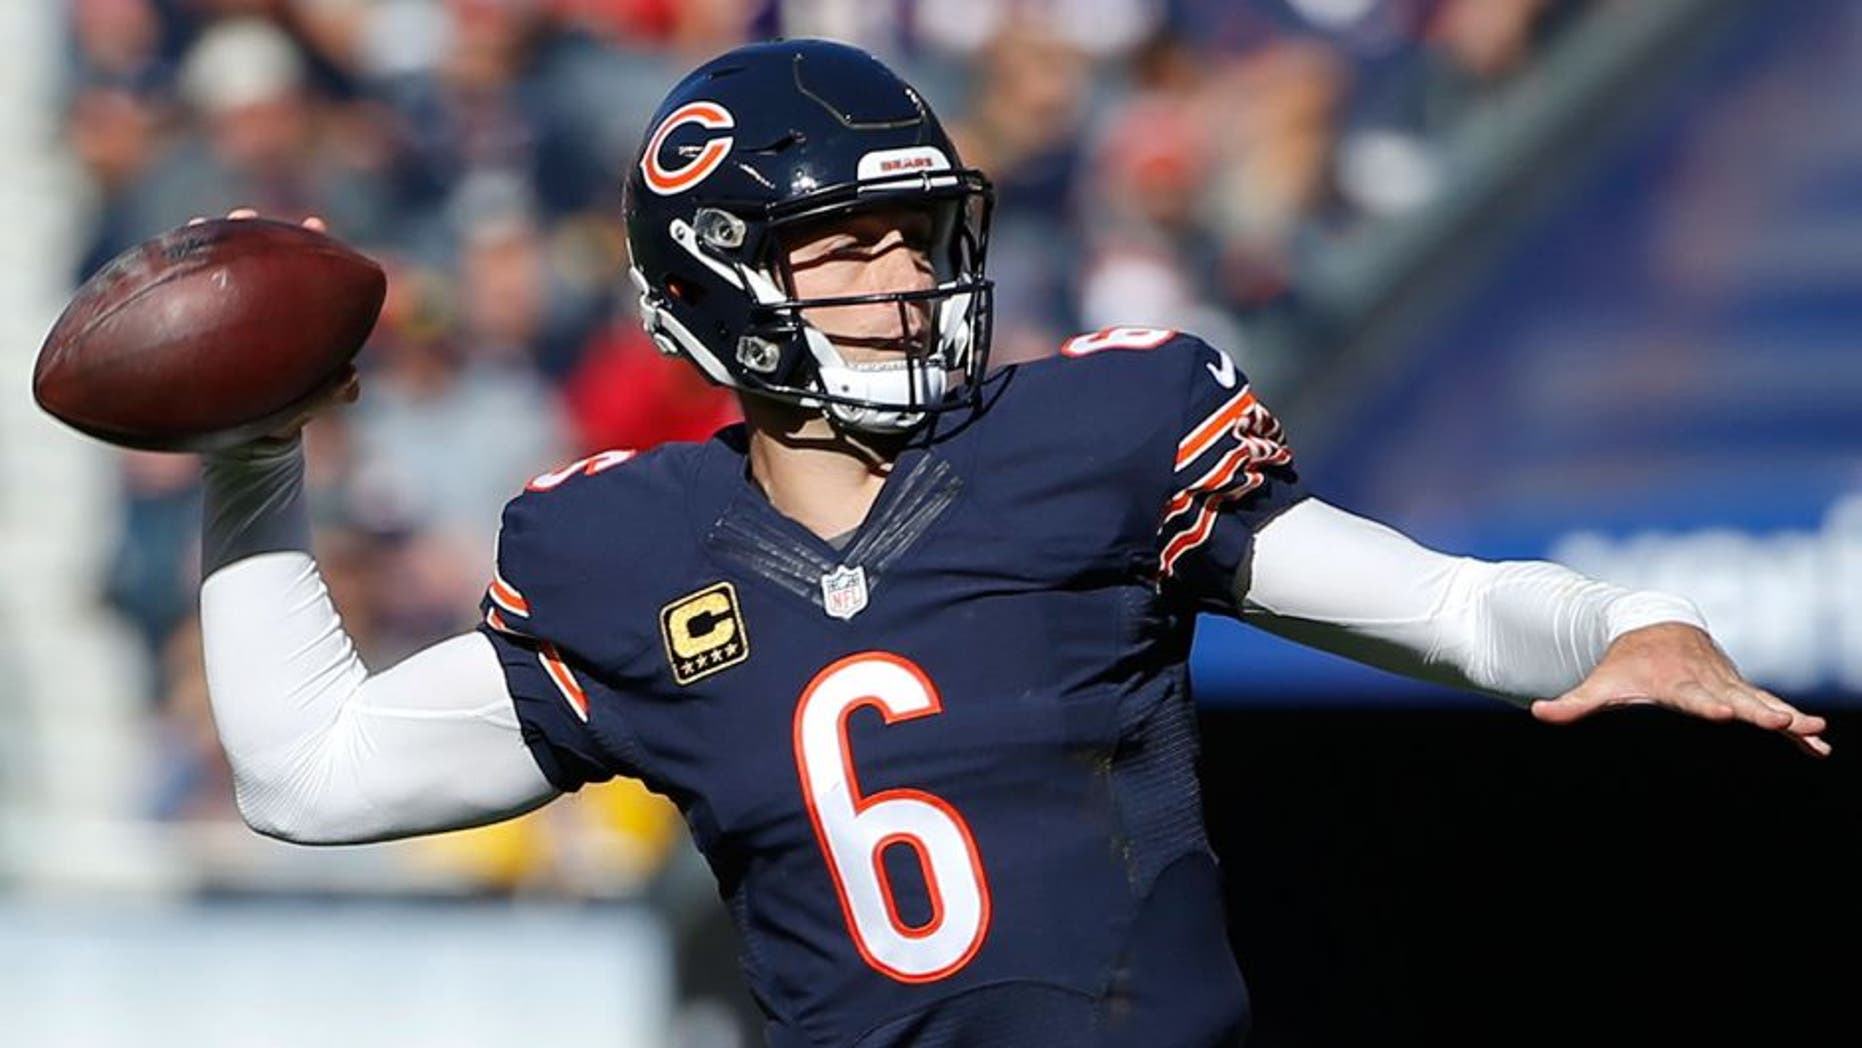 Nov 1, 2015; Chicago, IL, USA; Chicago Bears quarterback Jay Cutler (6) throws the ball against the Minnesota Vikings during the second quarter at Soldier Field. Mandatory Credit: Kamil Krzaczynski-USA TODAY Sports